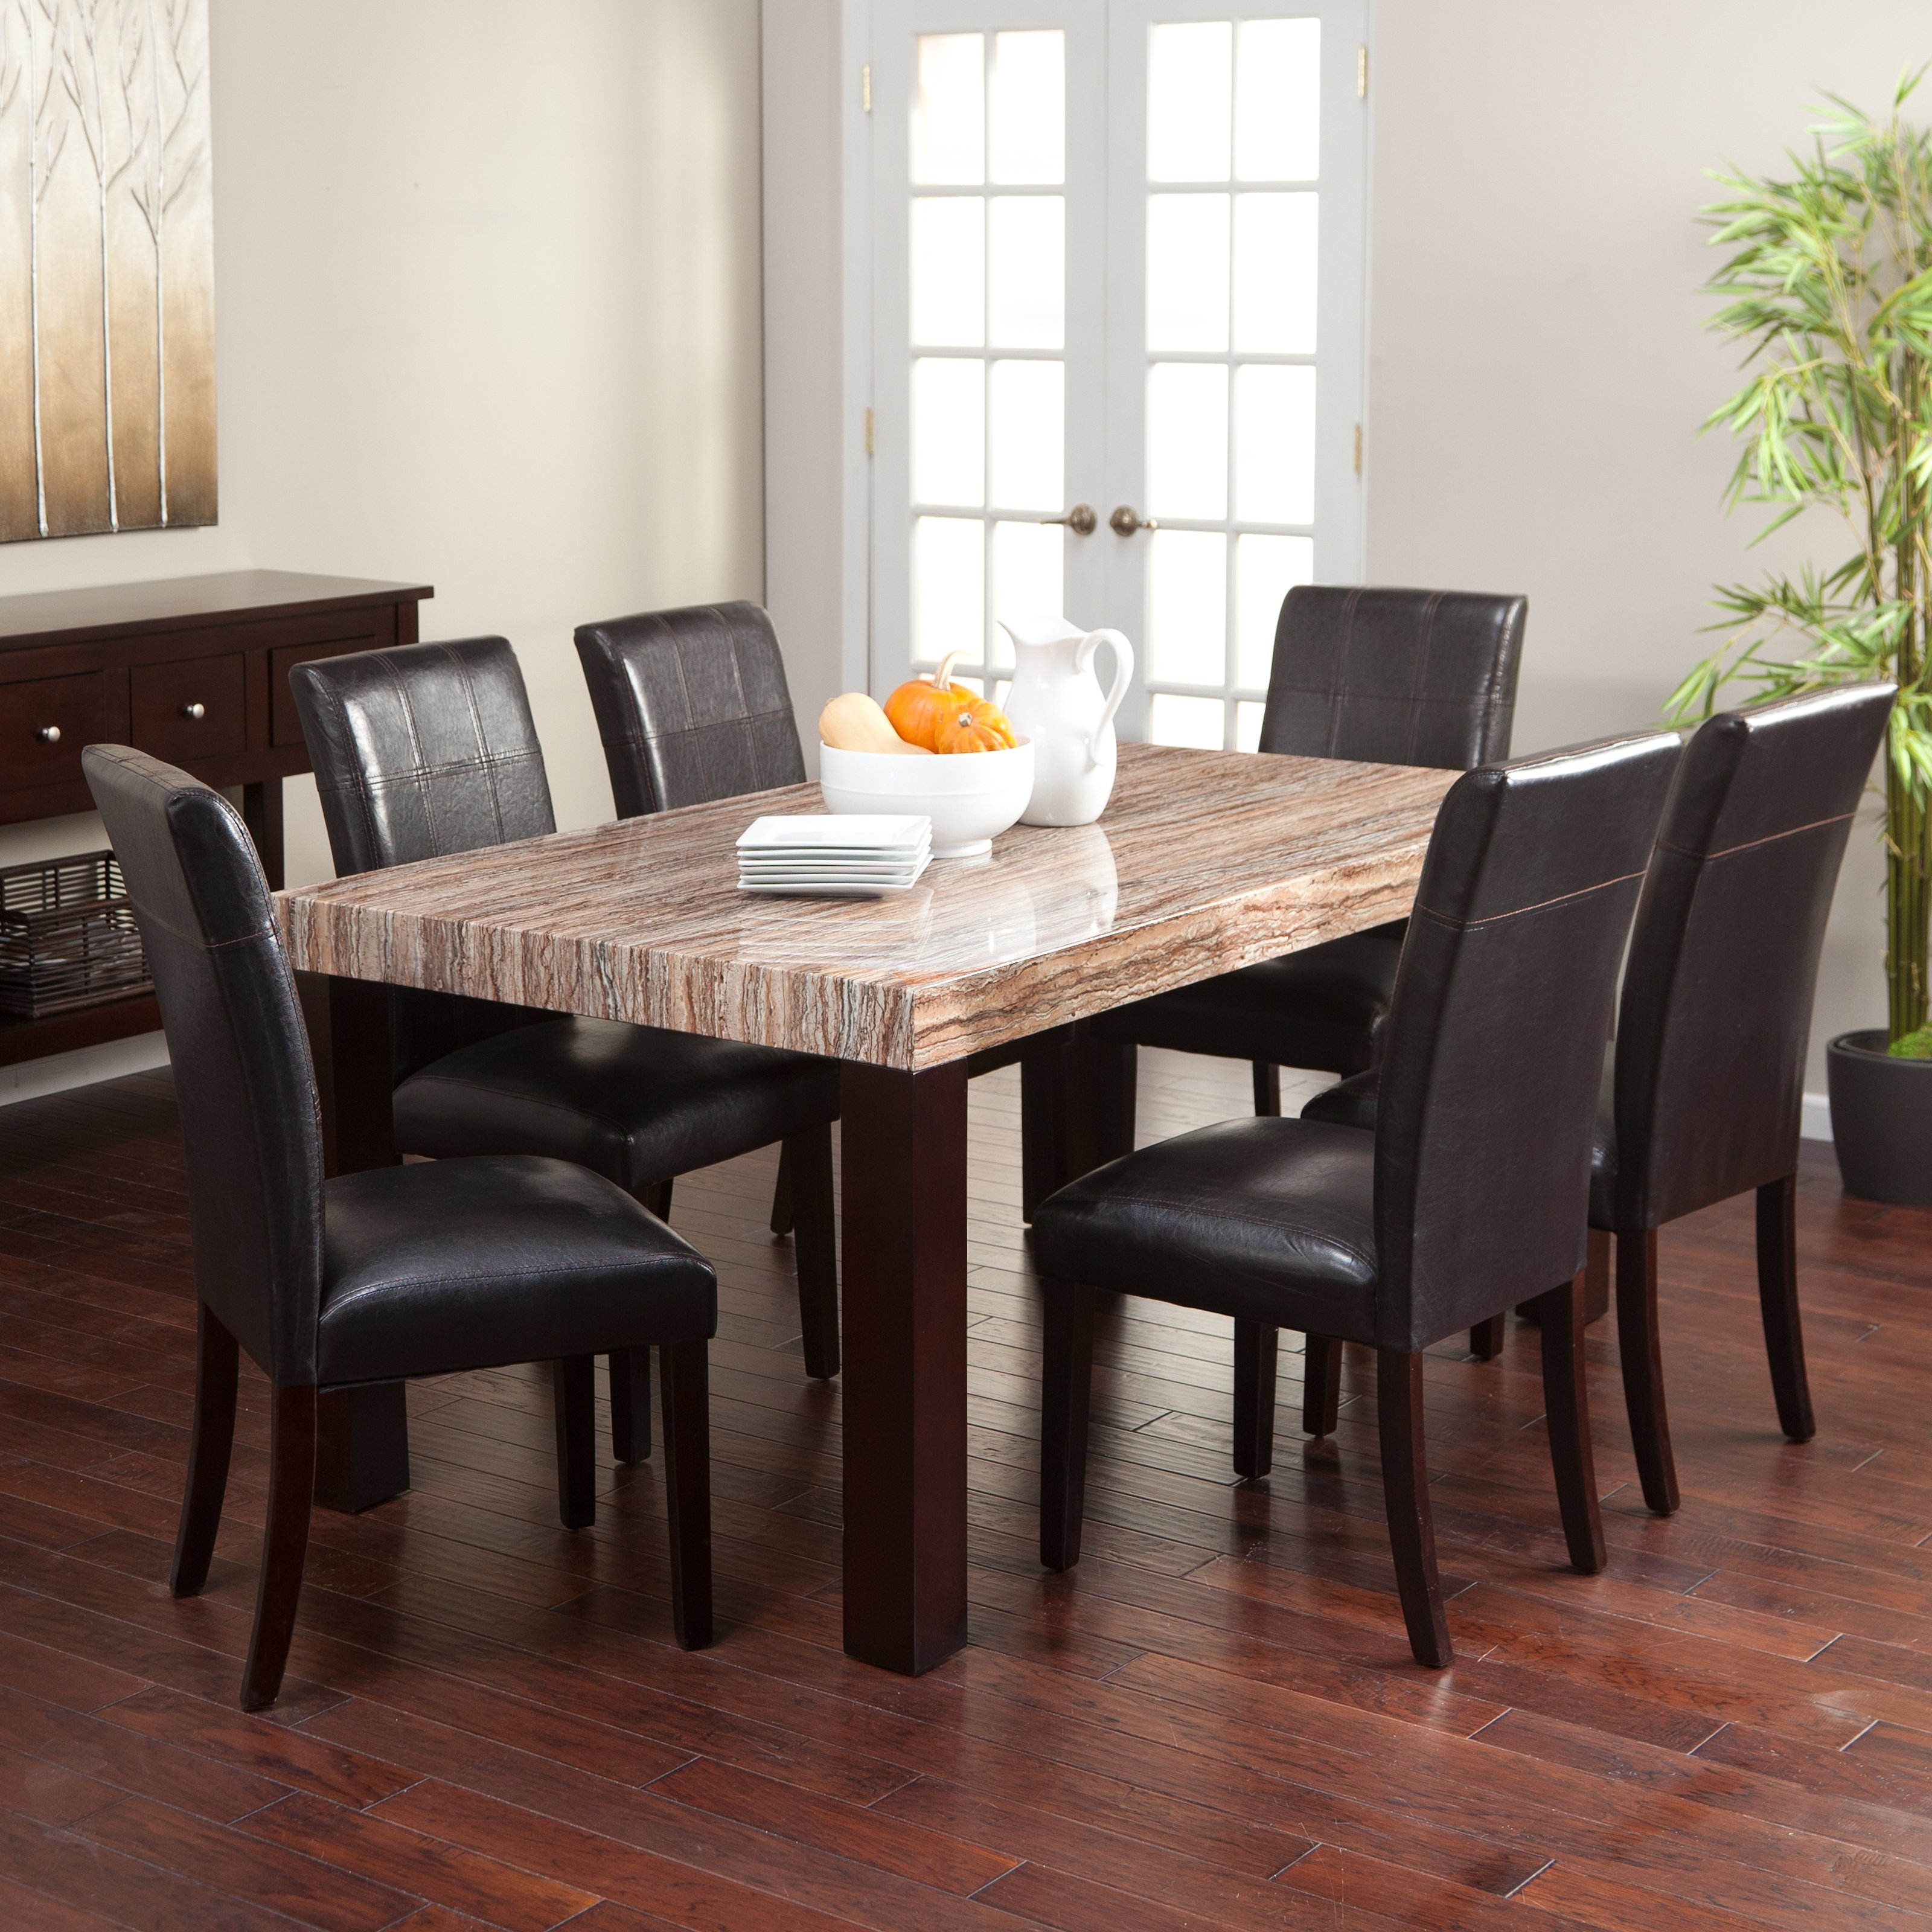 Dining Table Sets For Kitchen